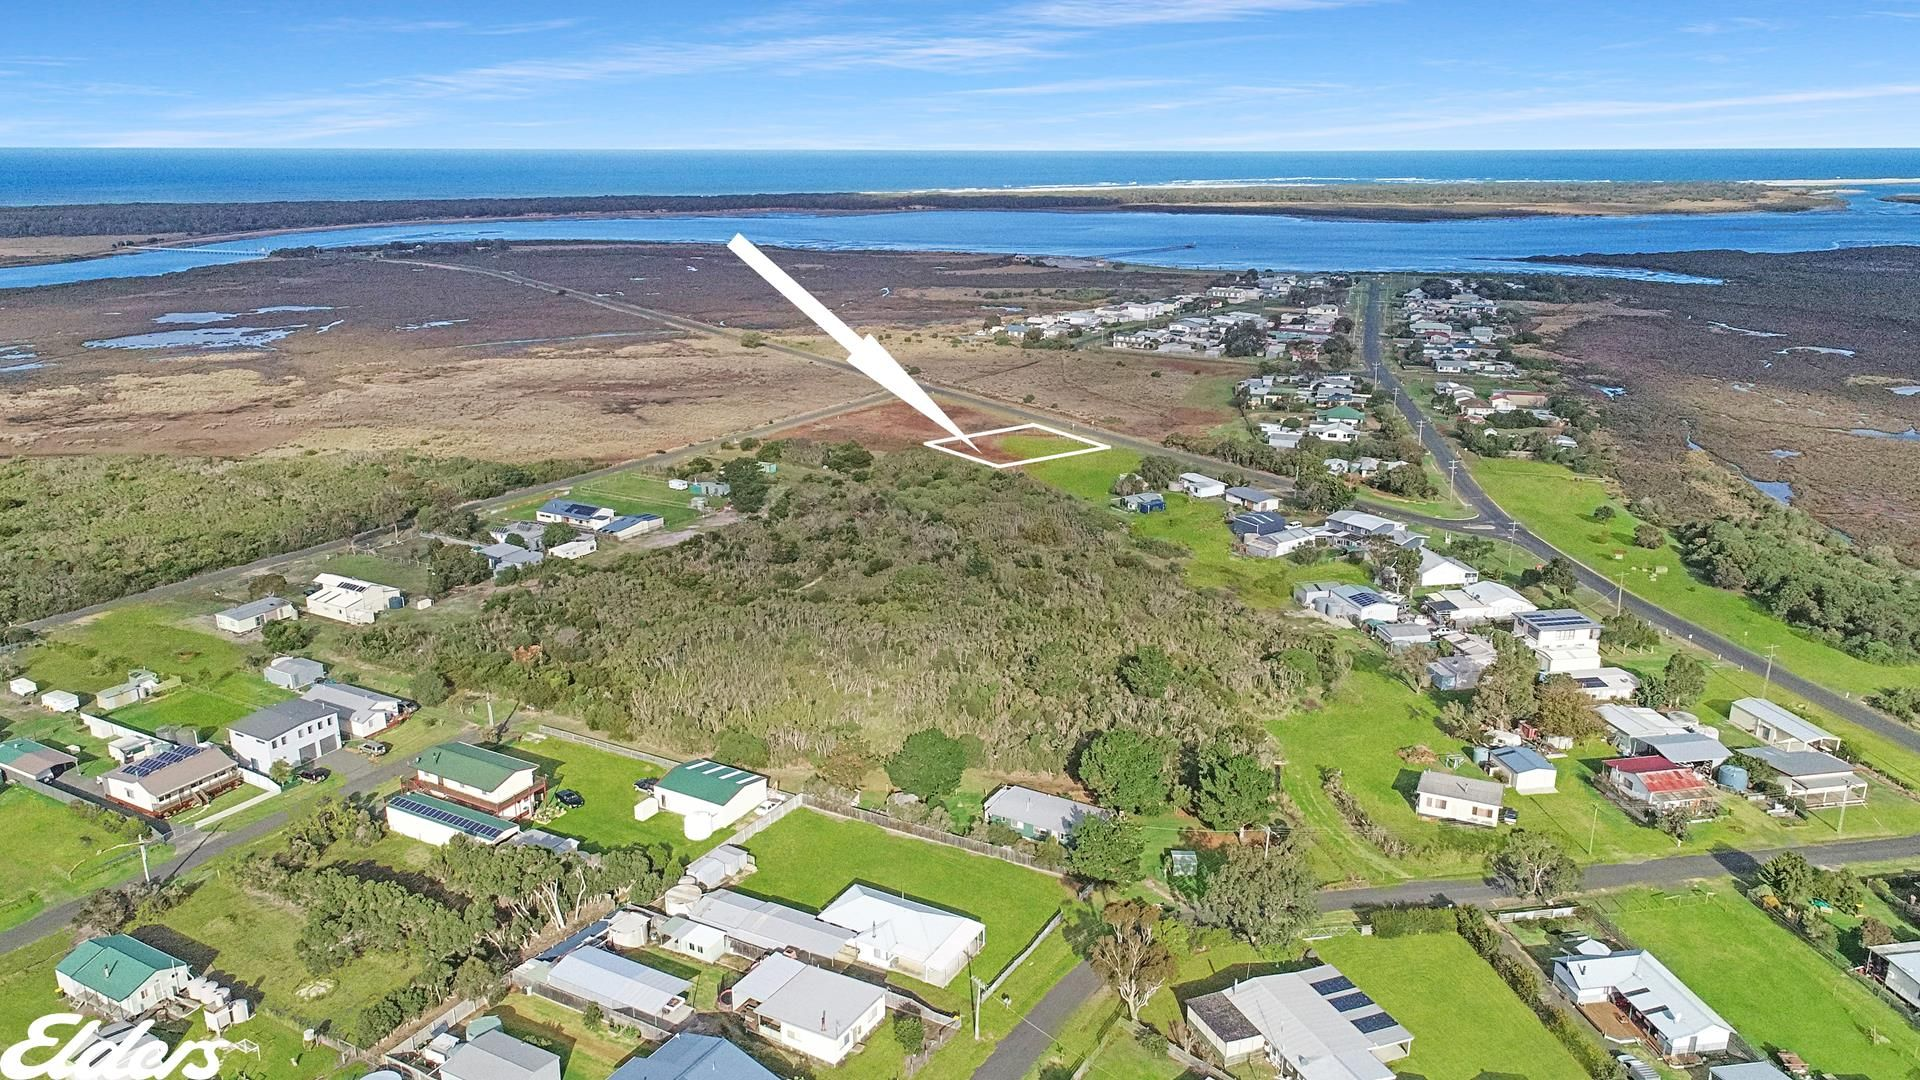 14-16 FORESHORE ROAD, Mcloughlins Beach VIC 3874, Image 0